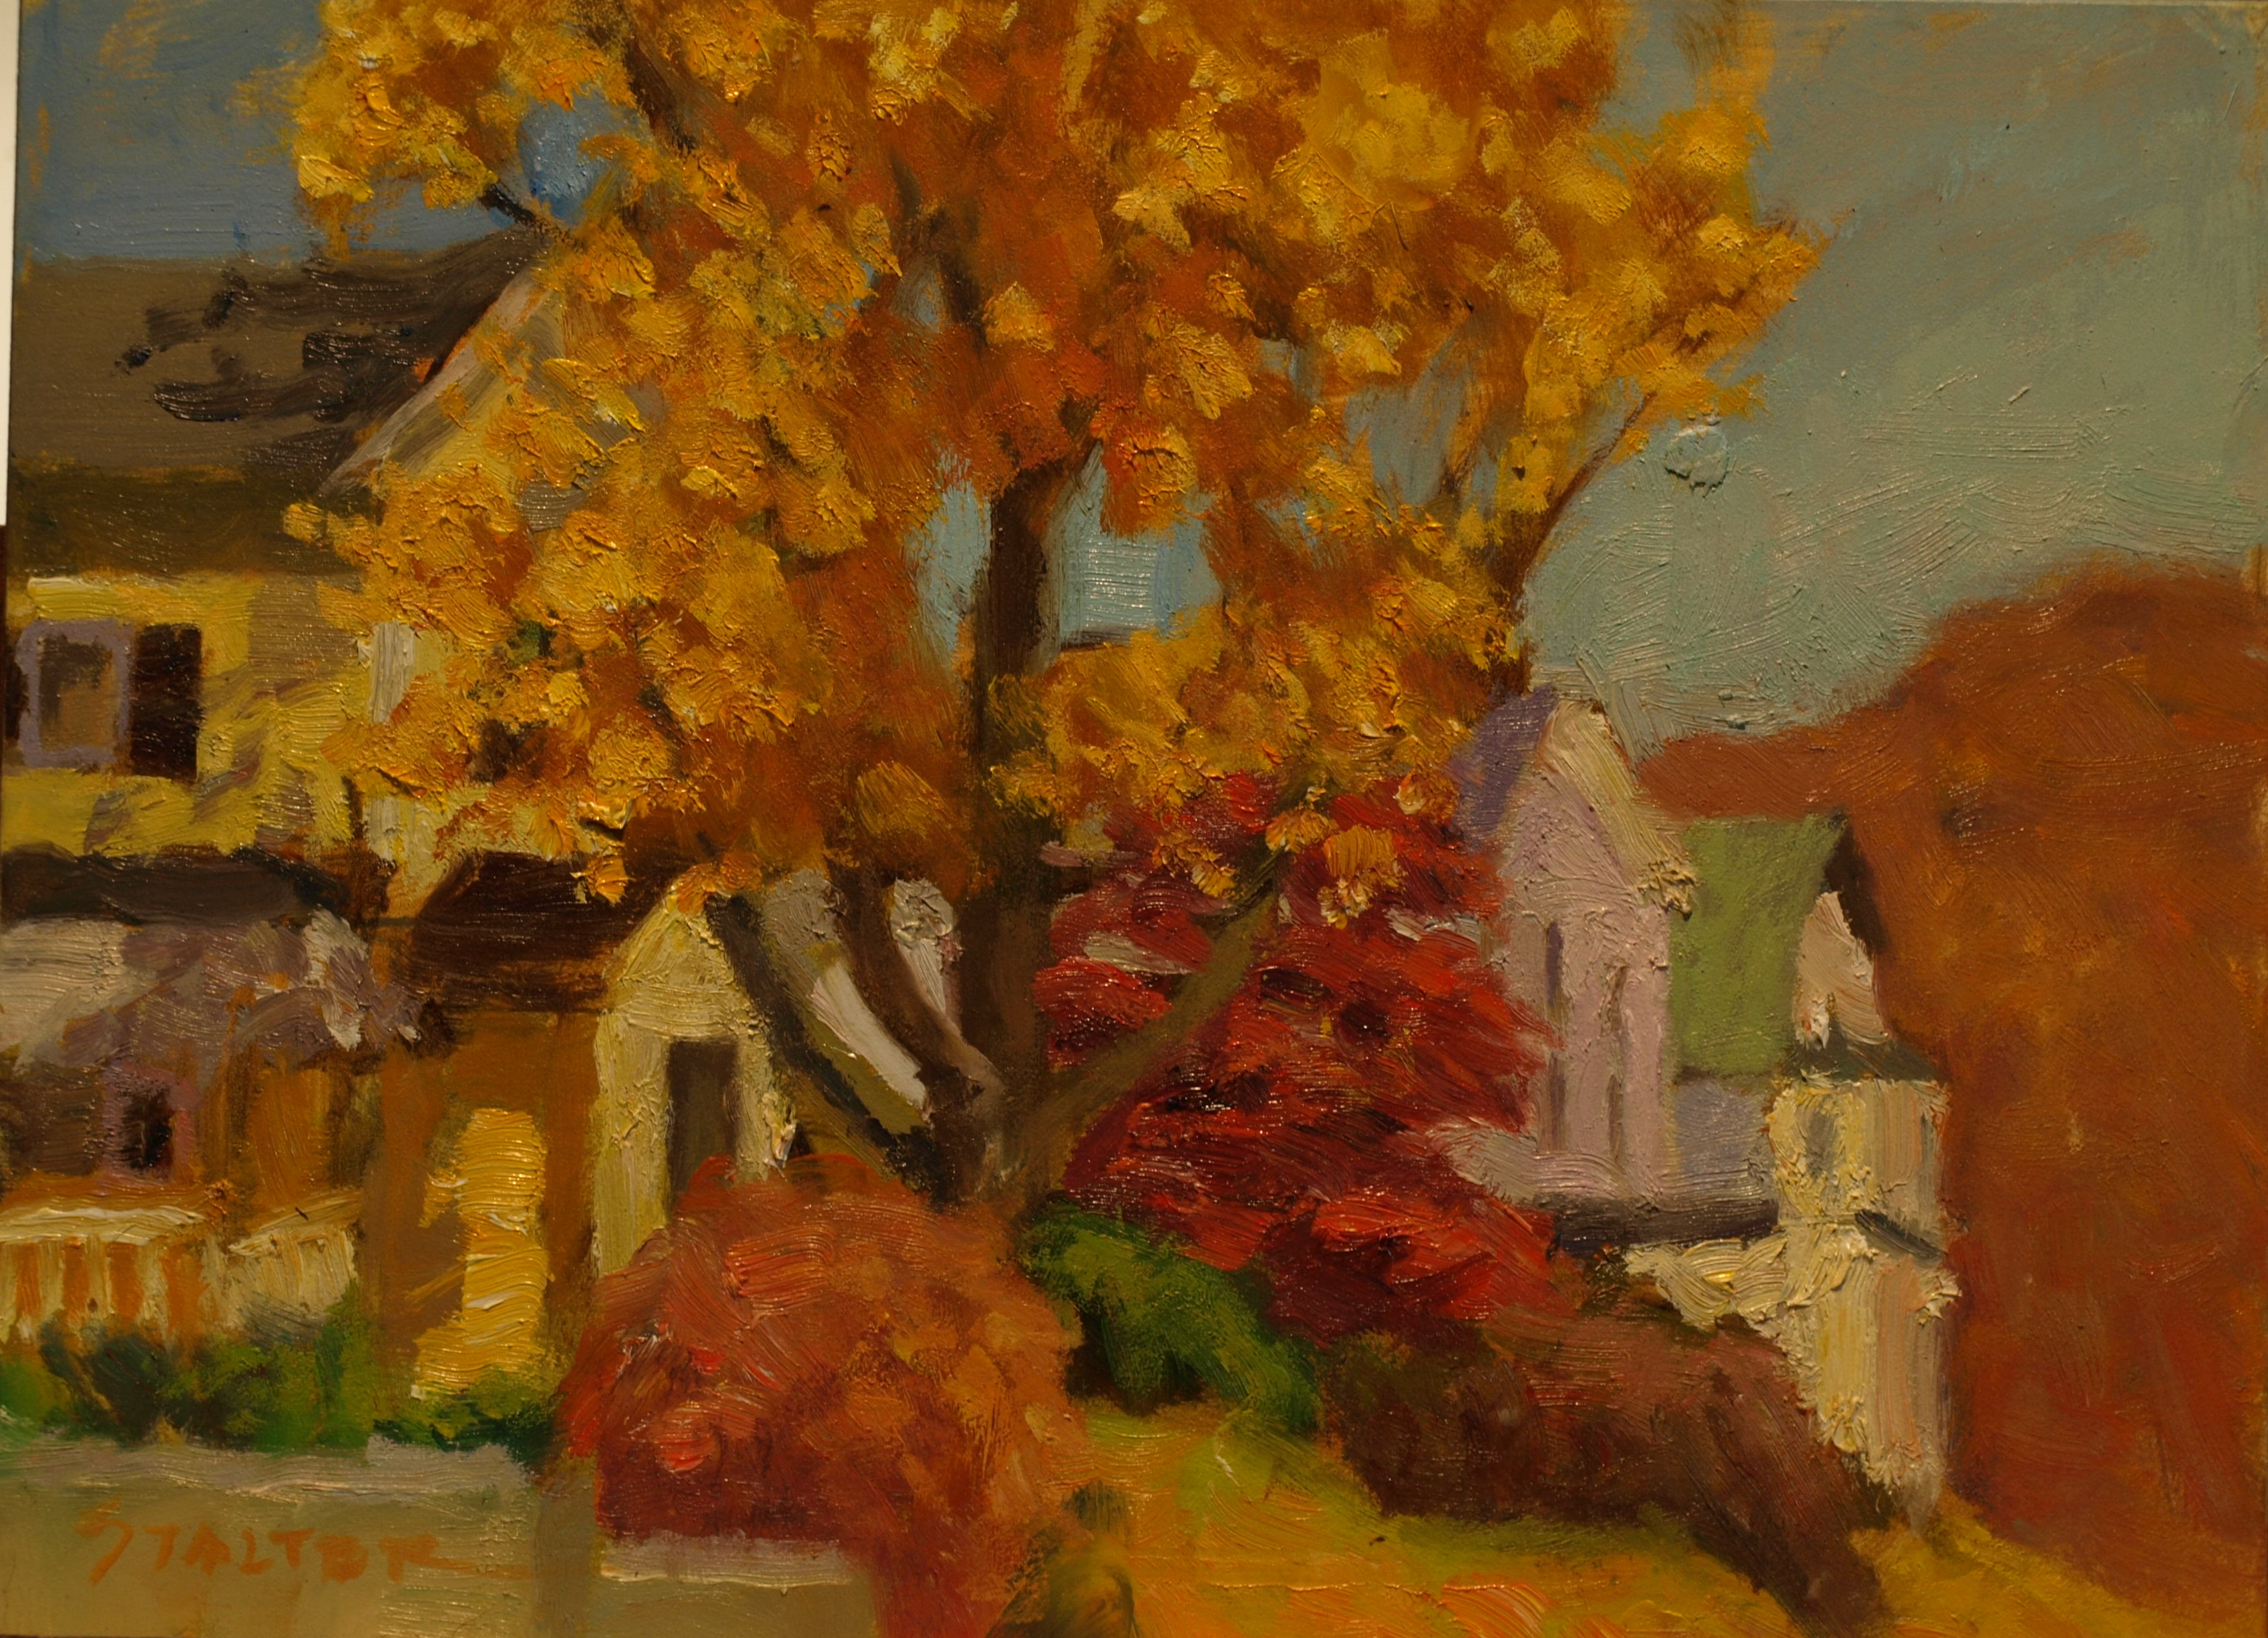 Autumn - Whittlesey Avenue, Oil on Canvas on Panel, 9 x 12 Inches, by Richard Stalter, $220